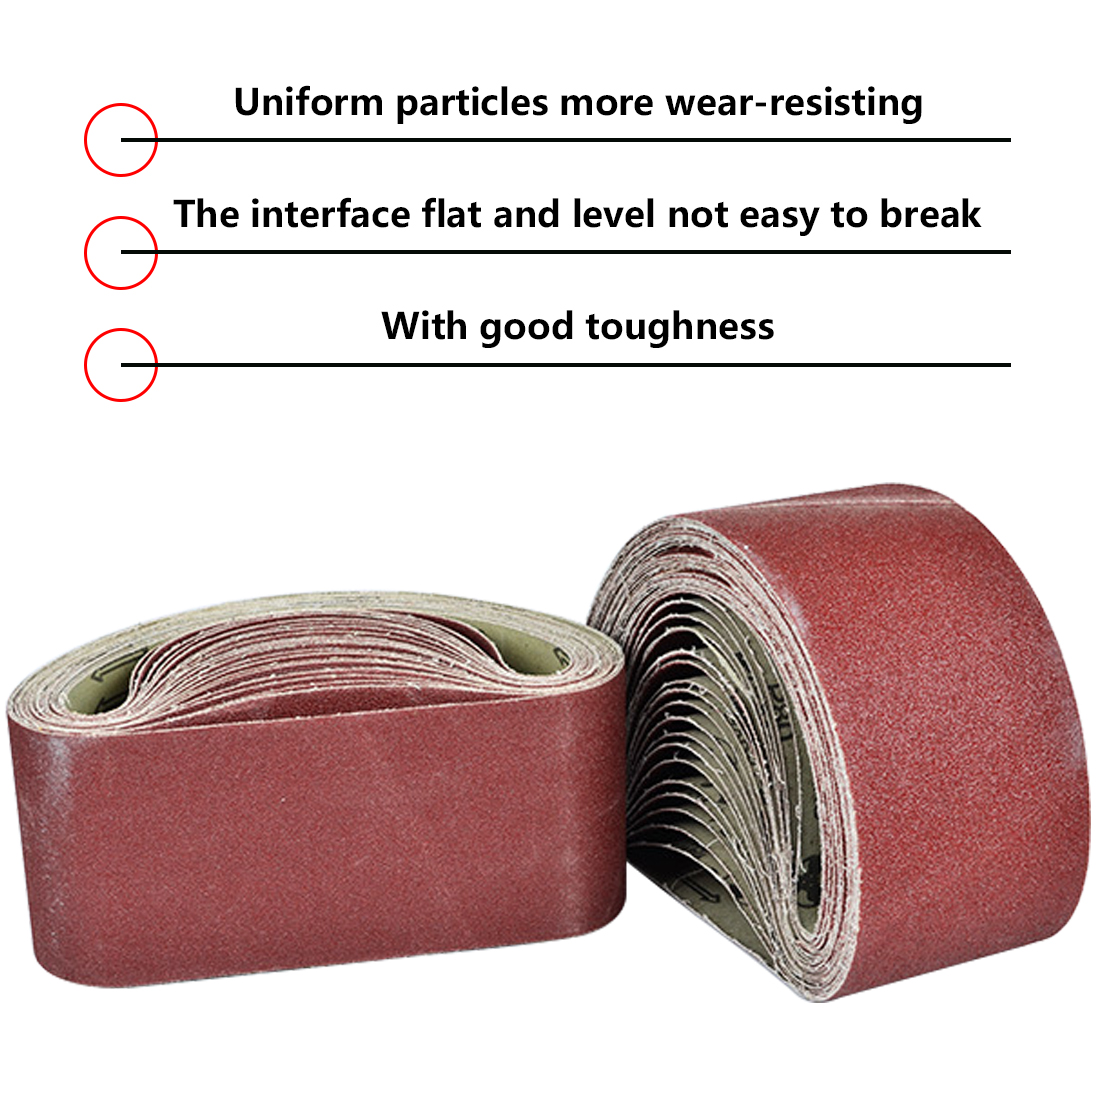 Search For Flights Sanding Belts 533x75mm 80-320 Grits Sandpaper Abrasive Bands For Sander Power Rotary Tools Dremel Accessories Abrasive Tool Demand Exceeding Supply Abrasive Tools